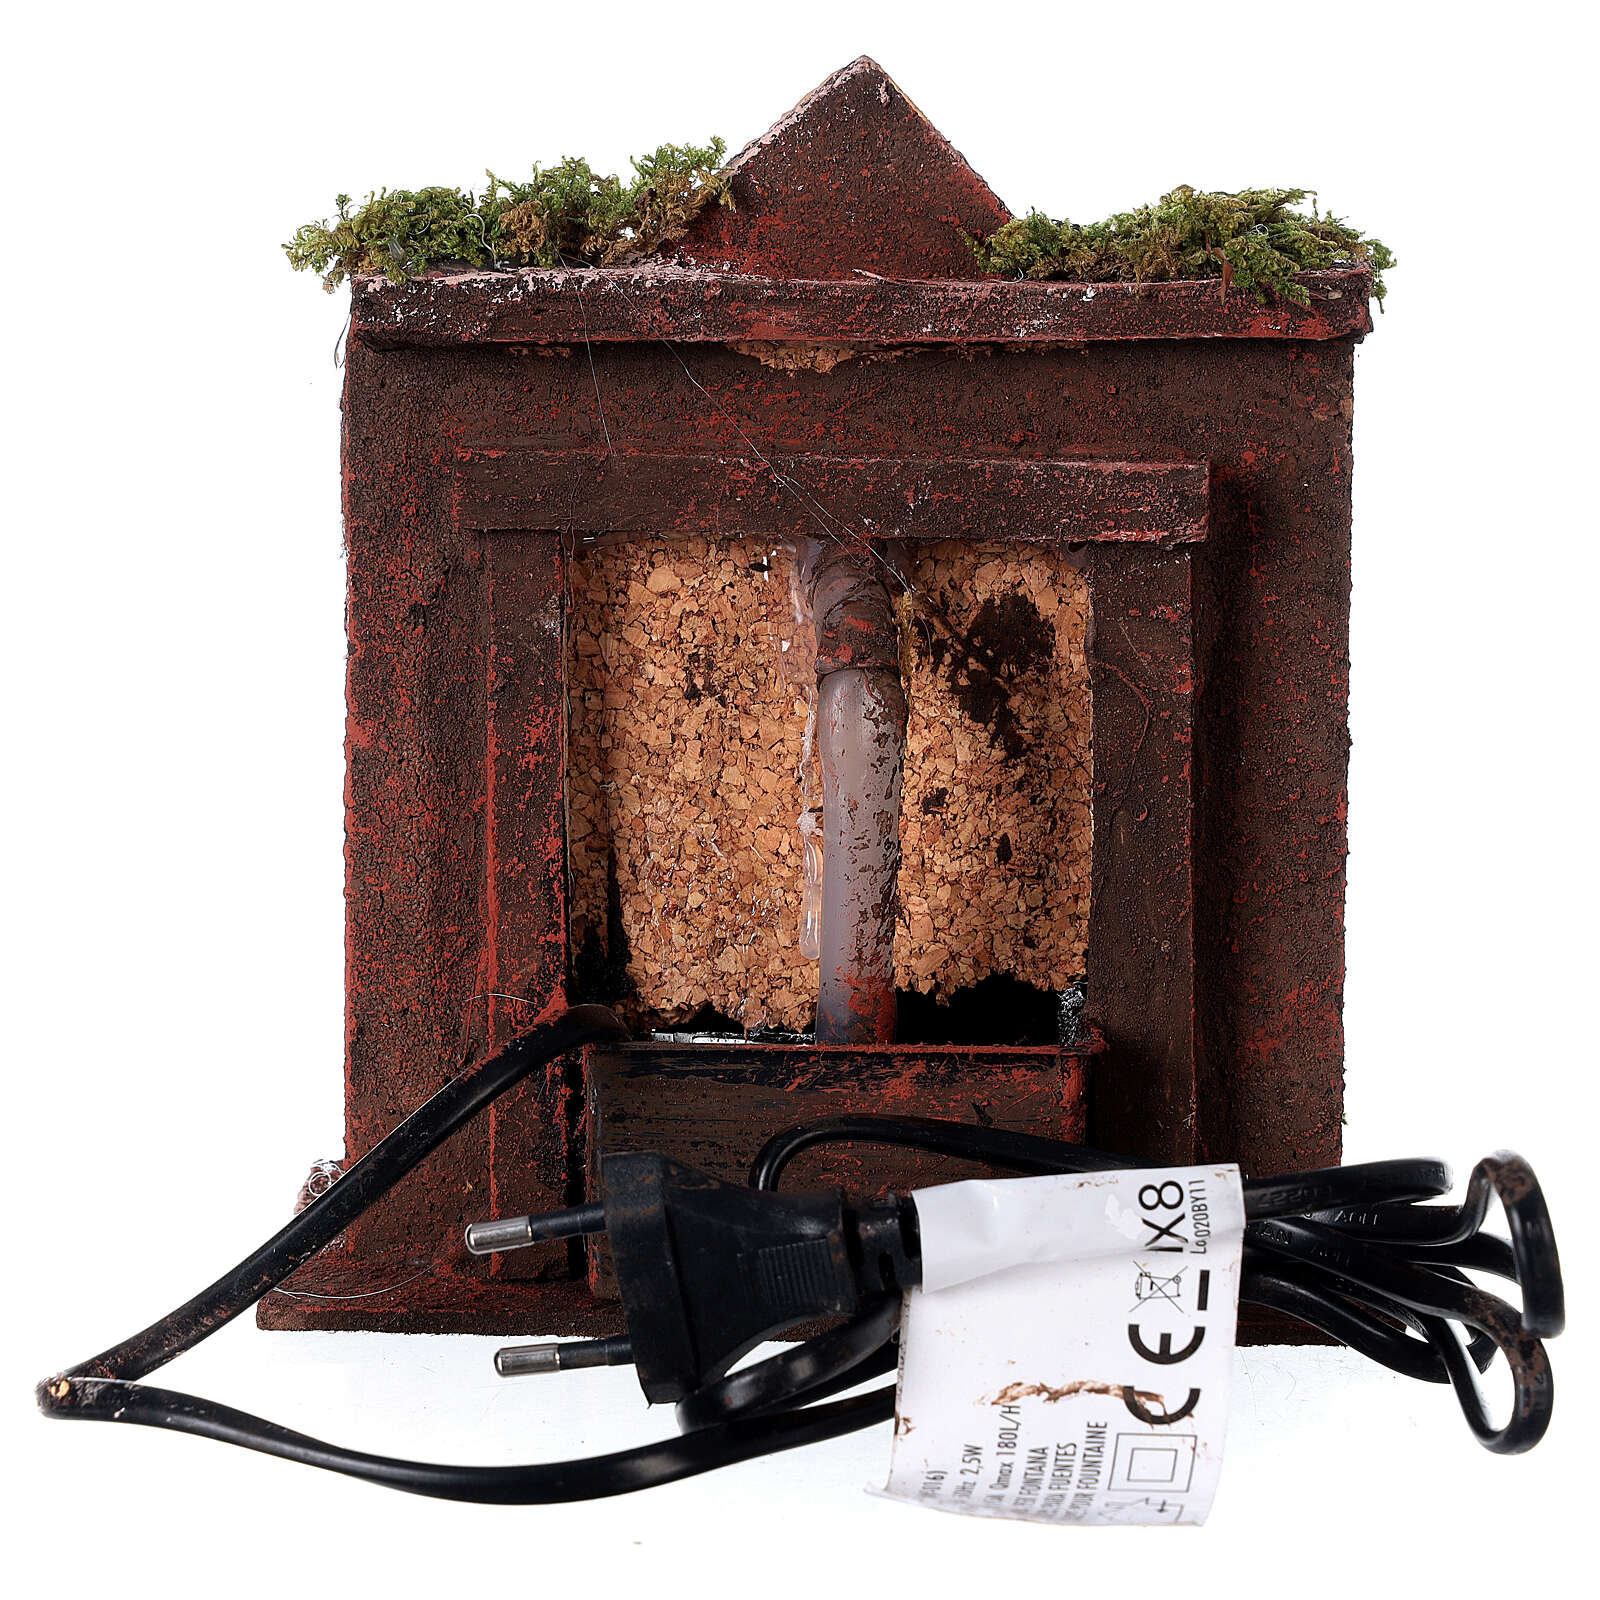 Electric fountain with real wood and cork for Neapolitan Nativity 16x14.5x14cm 4